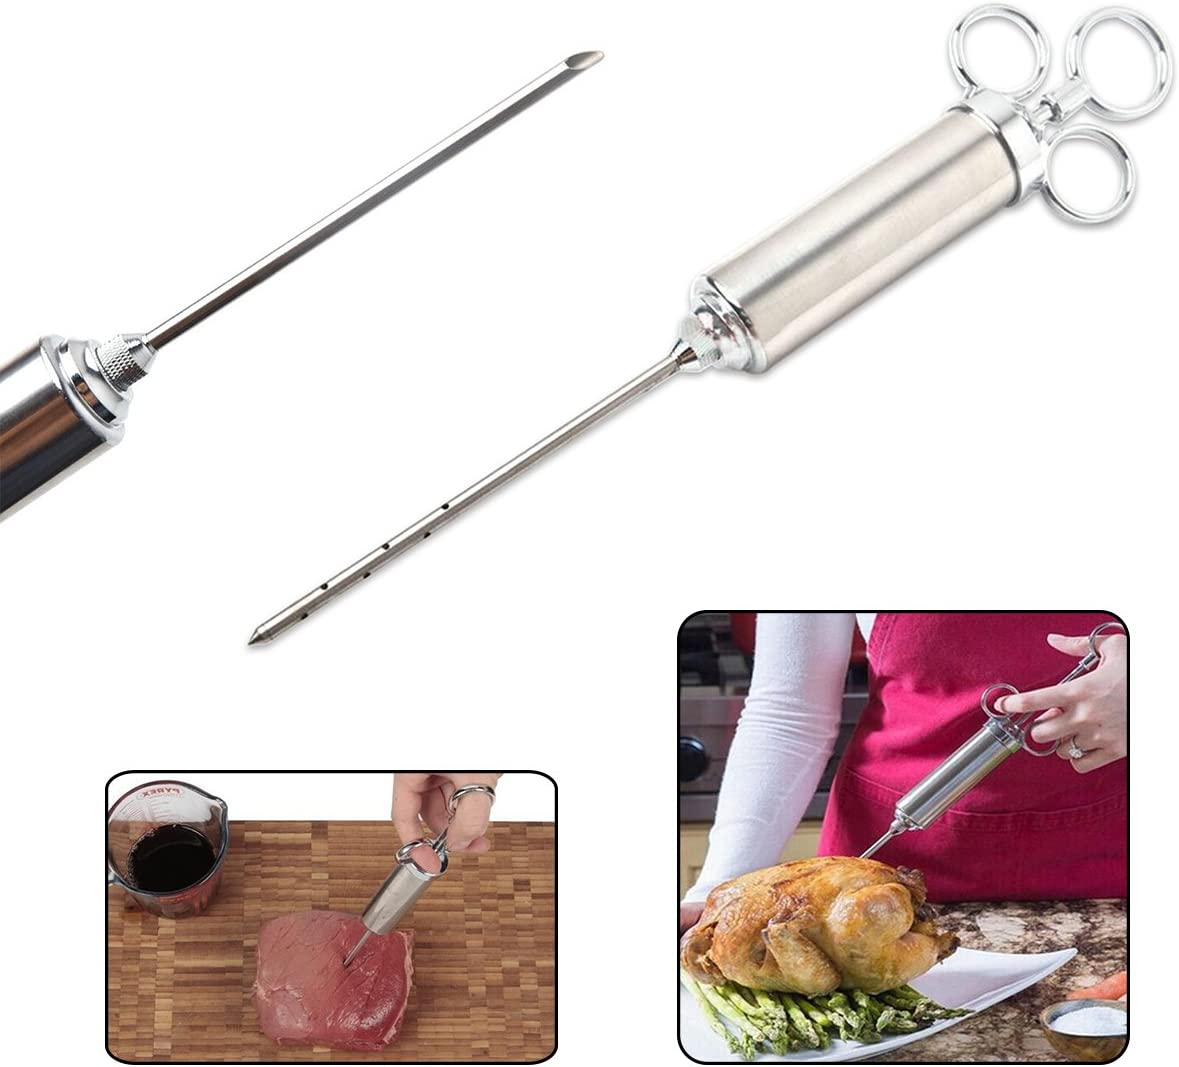 Chicken Turkey Mochiglory Stainless Steel Seasoning Injector Meat Syringe With 2 Professional Marinade Needles for Beef